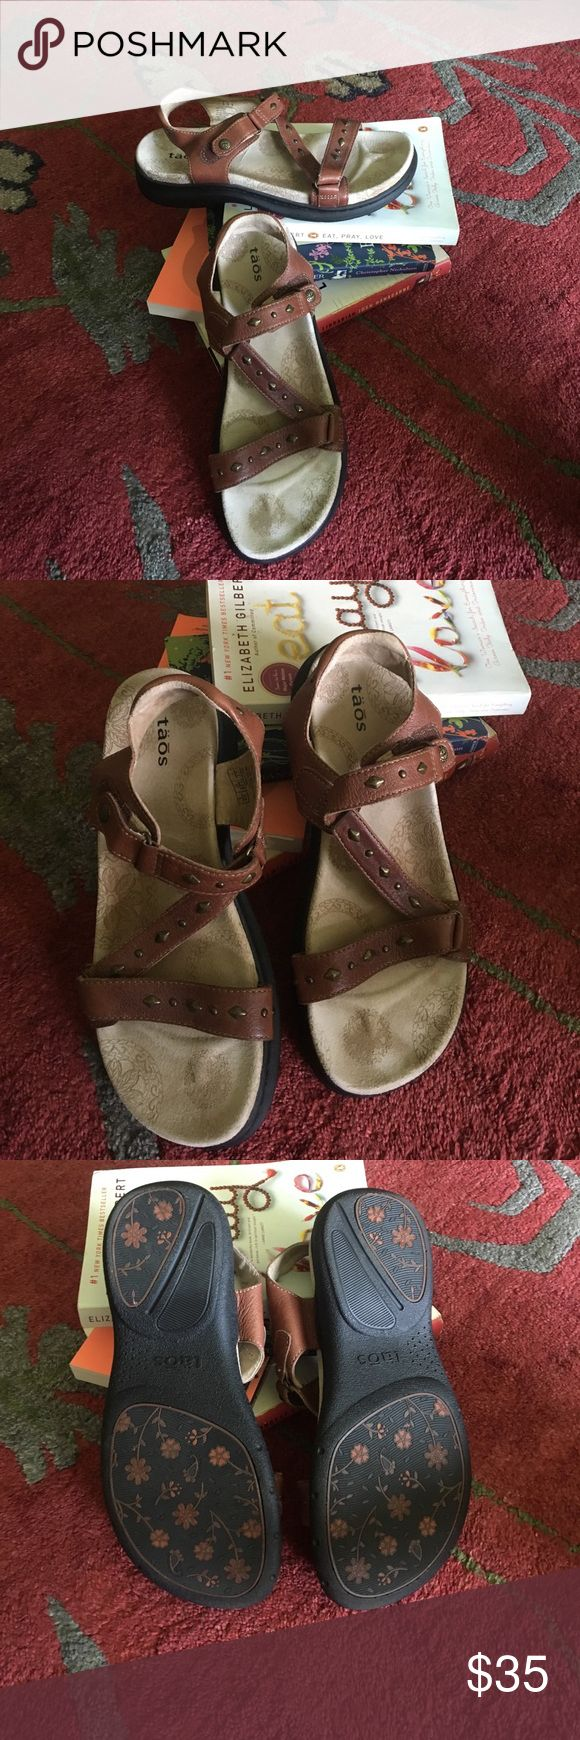 Taos Phoebe sandals, size 7/37. Nice pair of Taos sandals. No wear on the sole!! Taos Footwear Shoes Sandals